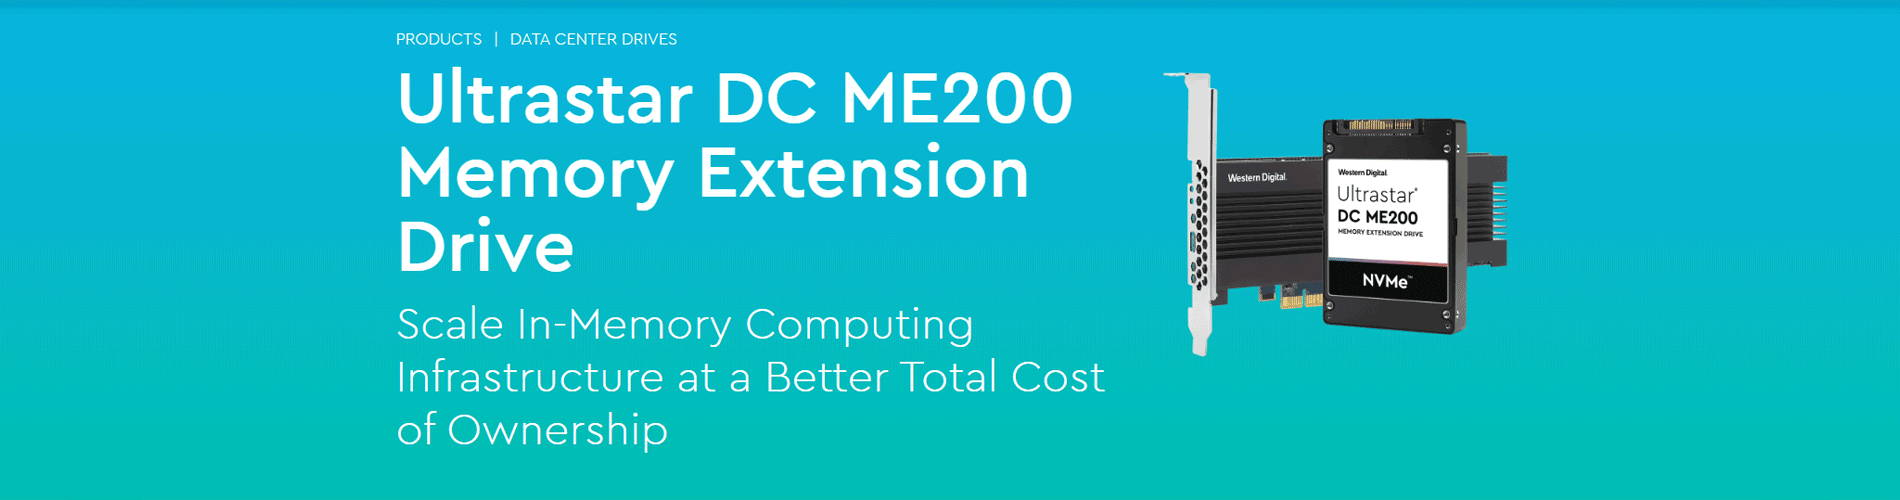 Ultrastar DCME200 Memory Extension Drive